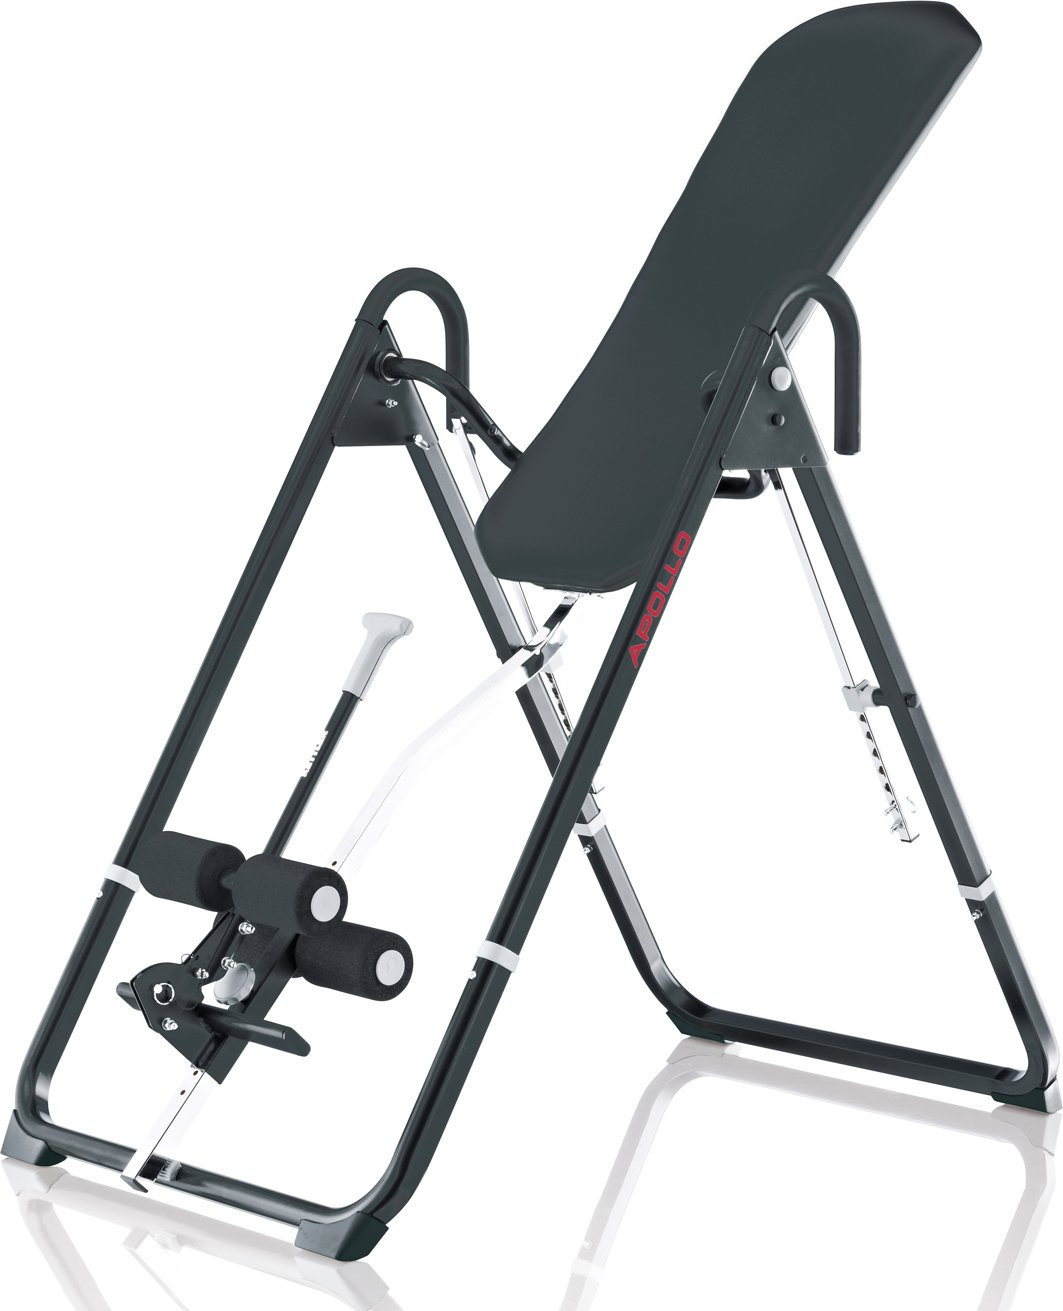 Kettler Home Exercise/Fitness Equipment: APOLLO Gravity Inversion Therapy Table by Kettler